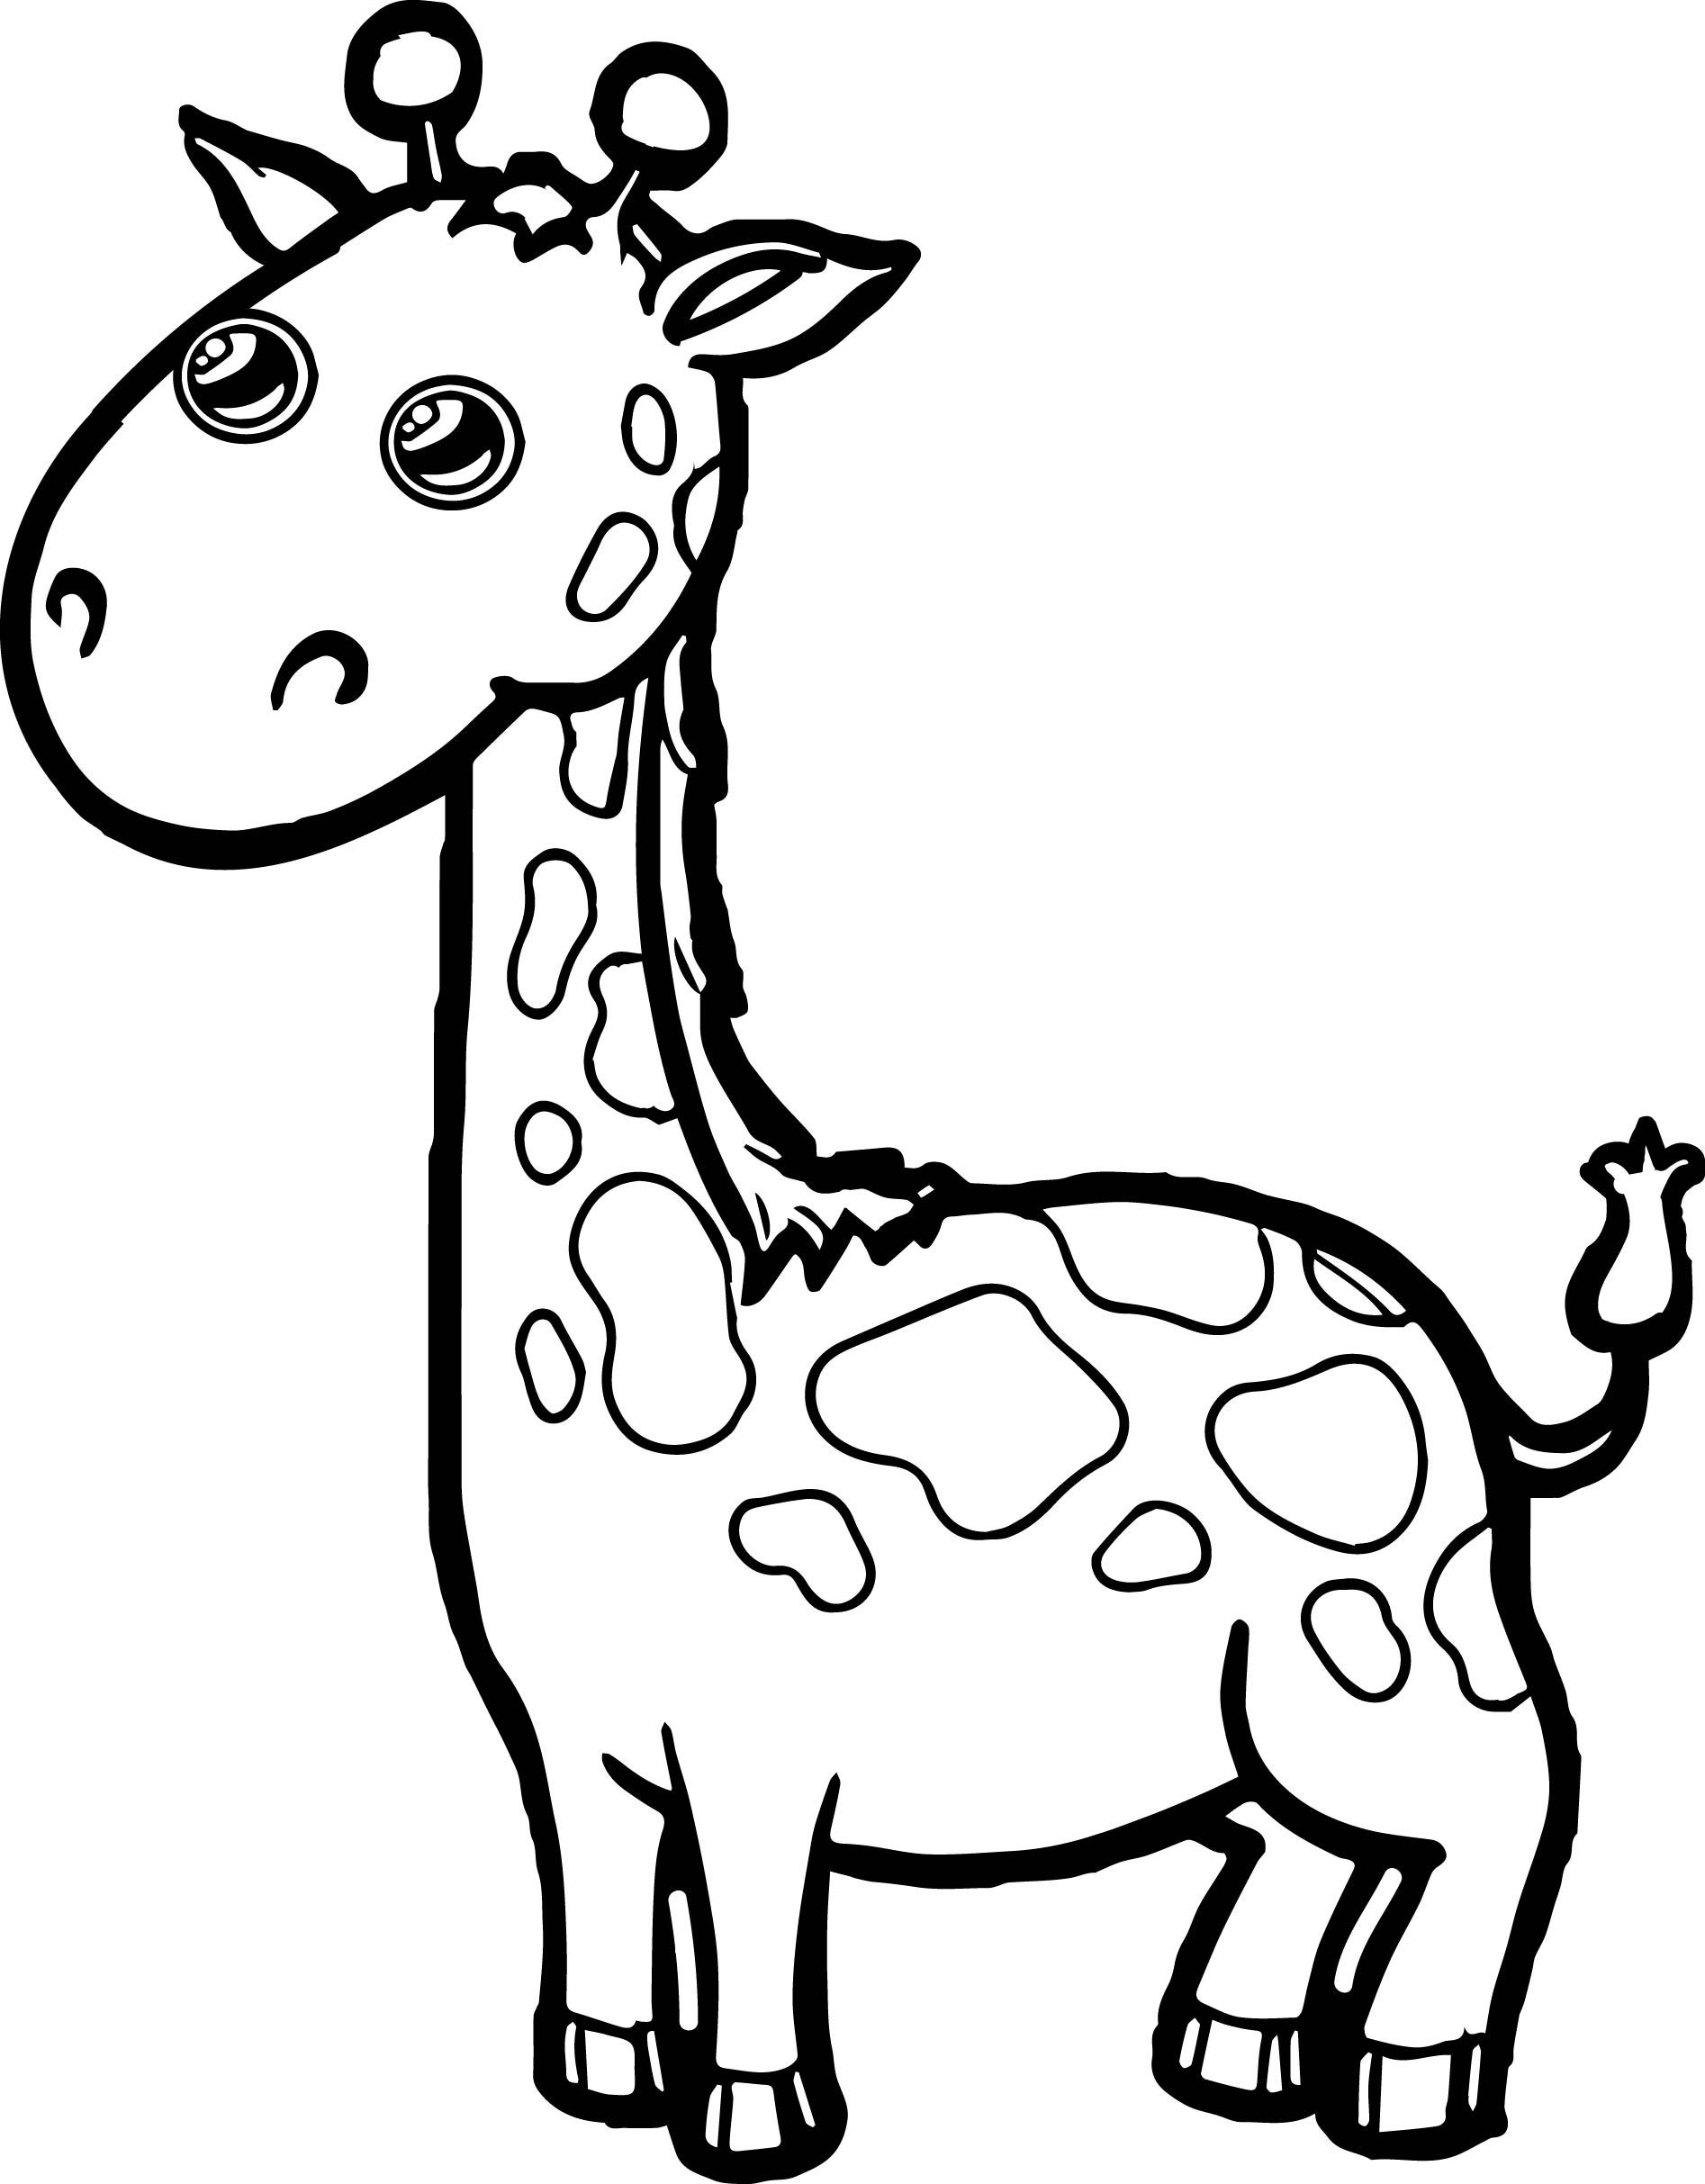 Cool Zoo Giraffe Cartoon Coloring Page Coloring Pages Leaf